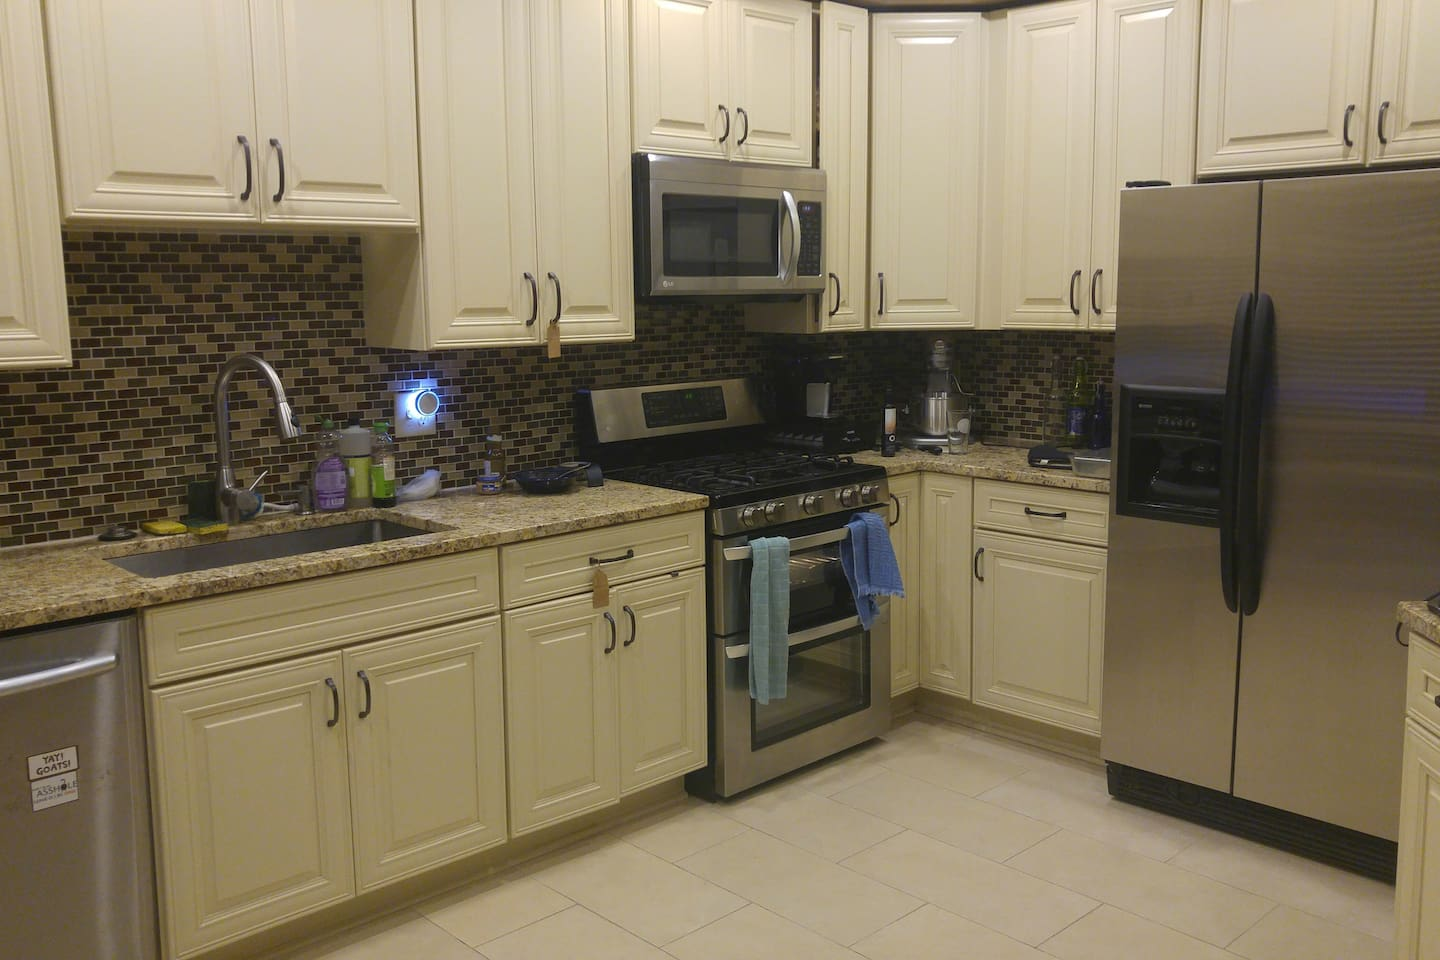 The kitchen is available for you to use.